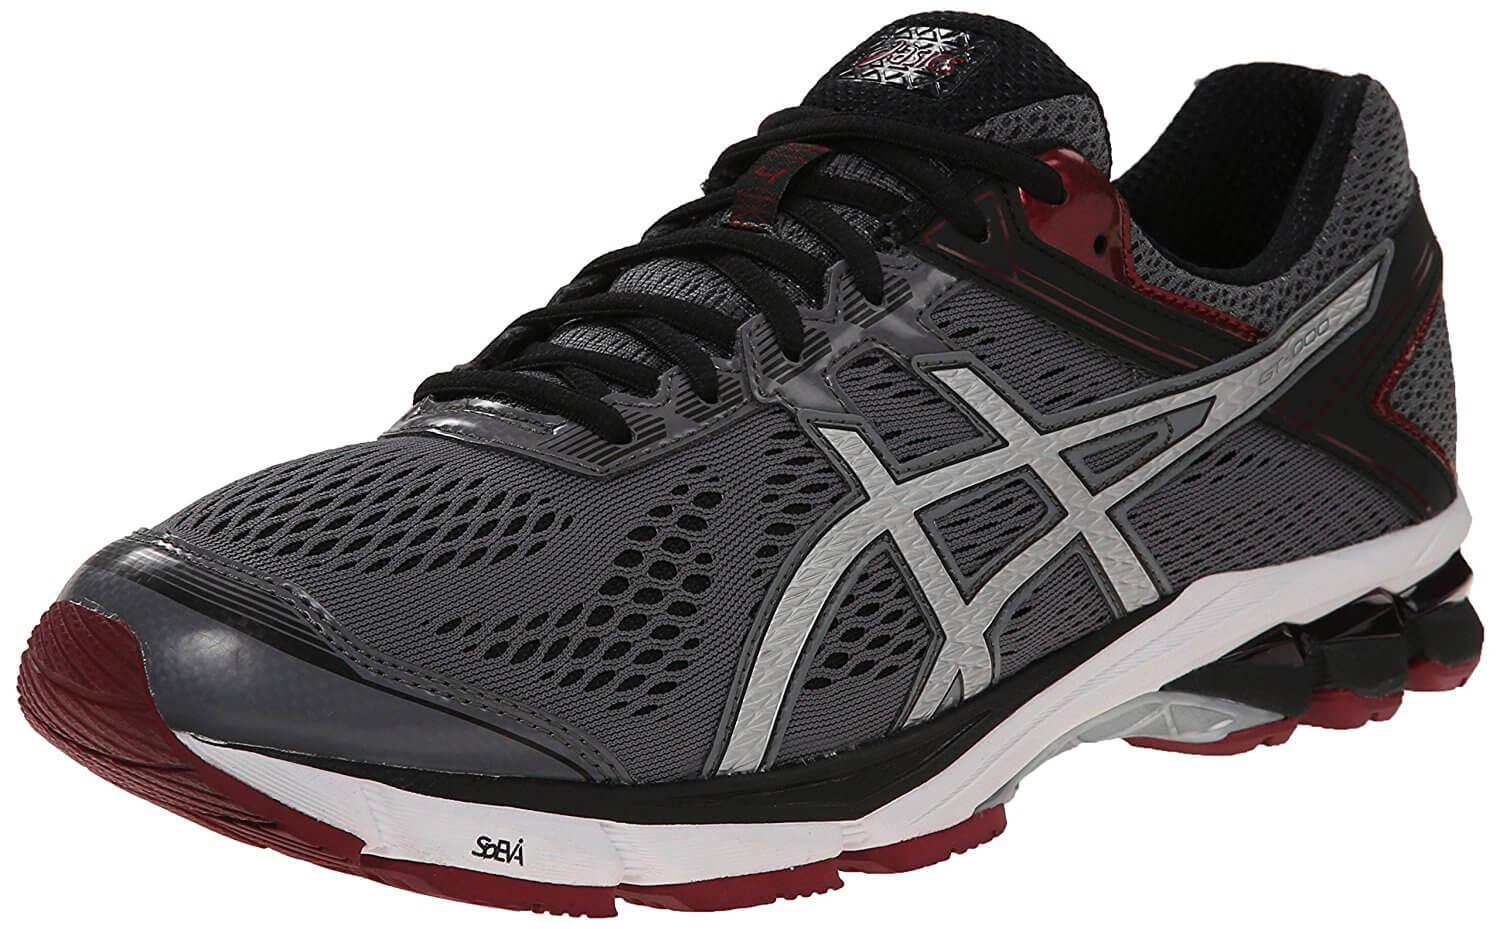 bd9df90f Asics GT 1000 4 Reviewed for Performance & Quality